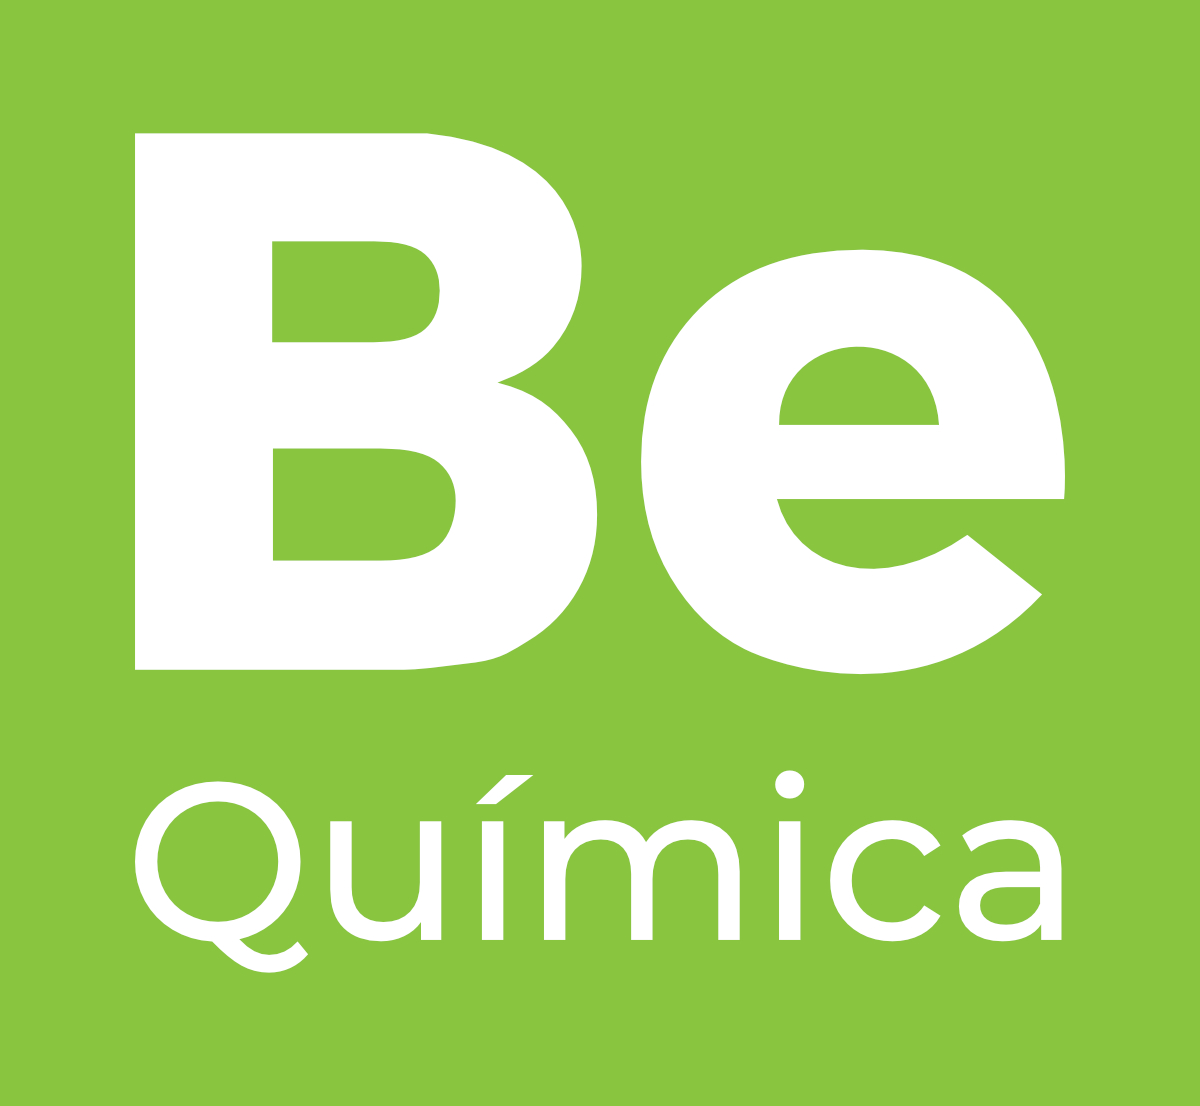 BeQuimica